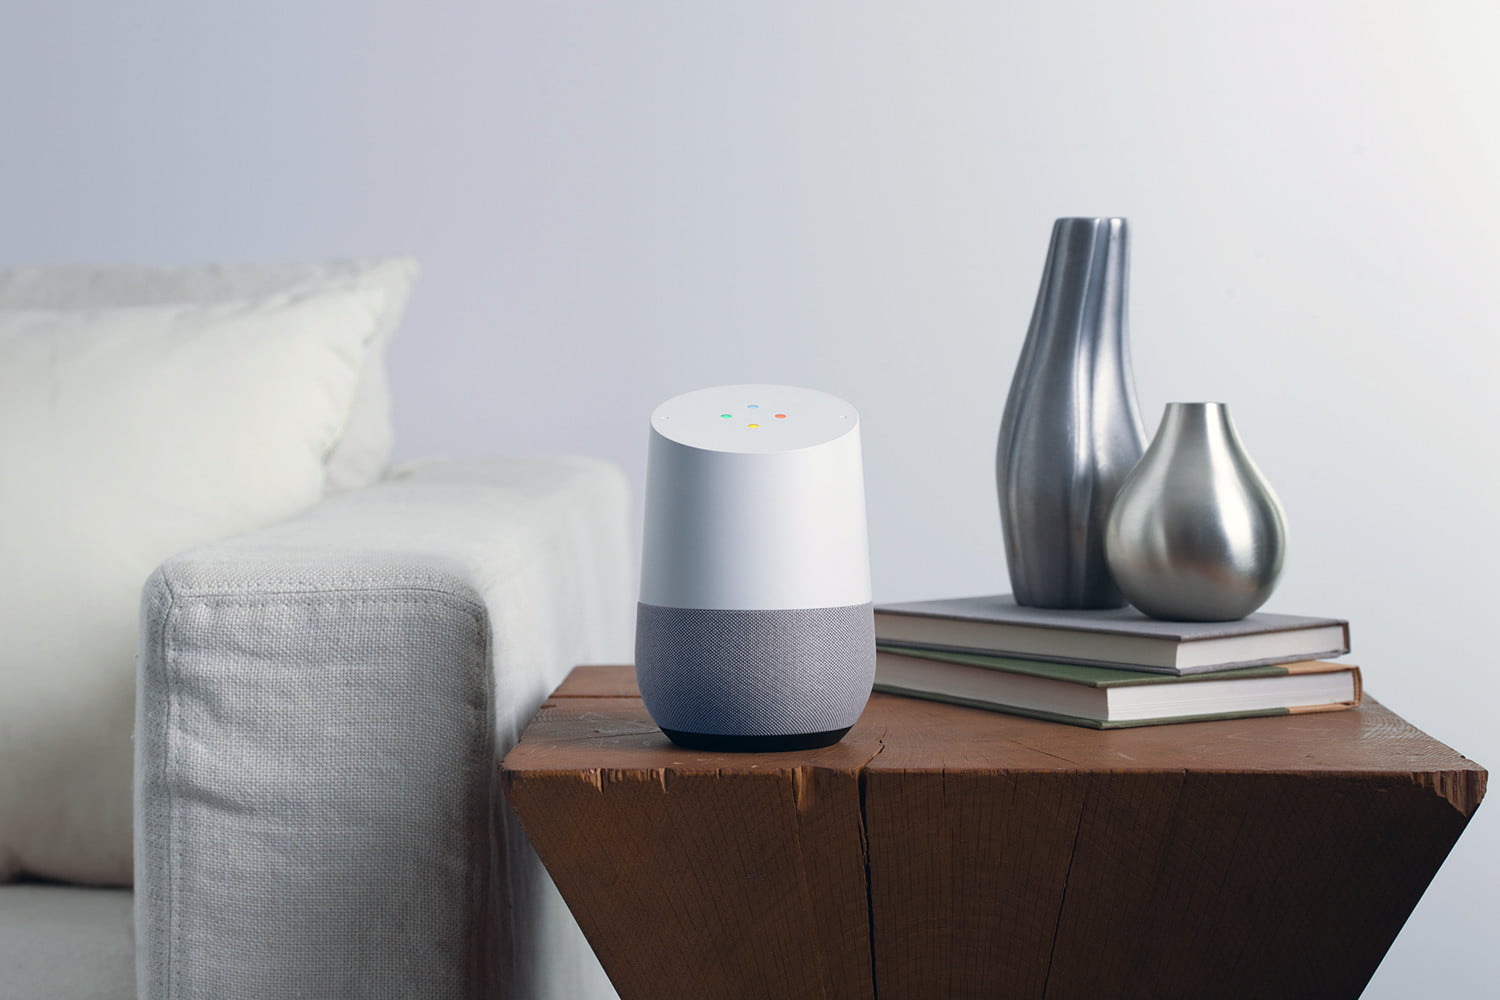 How to Set Up Routines on Your Google Home Device   Digital Trends